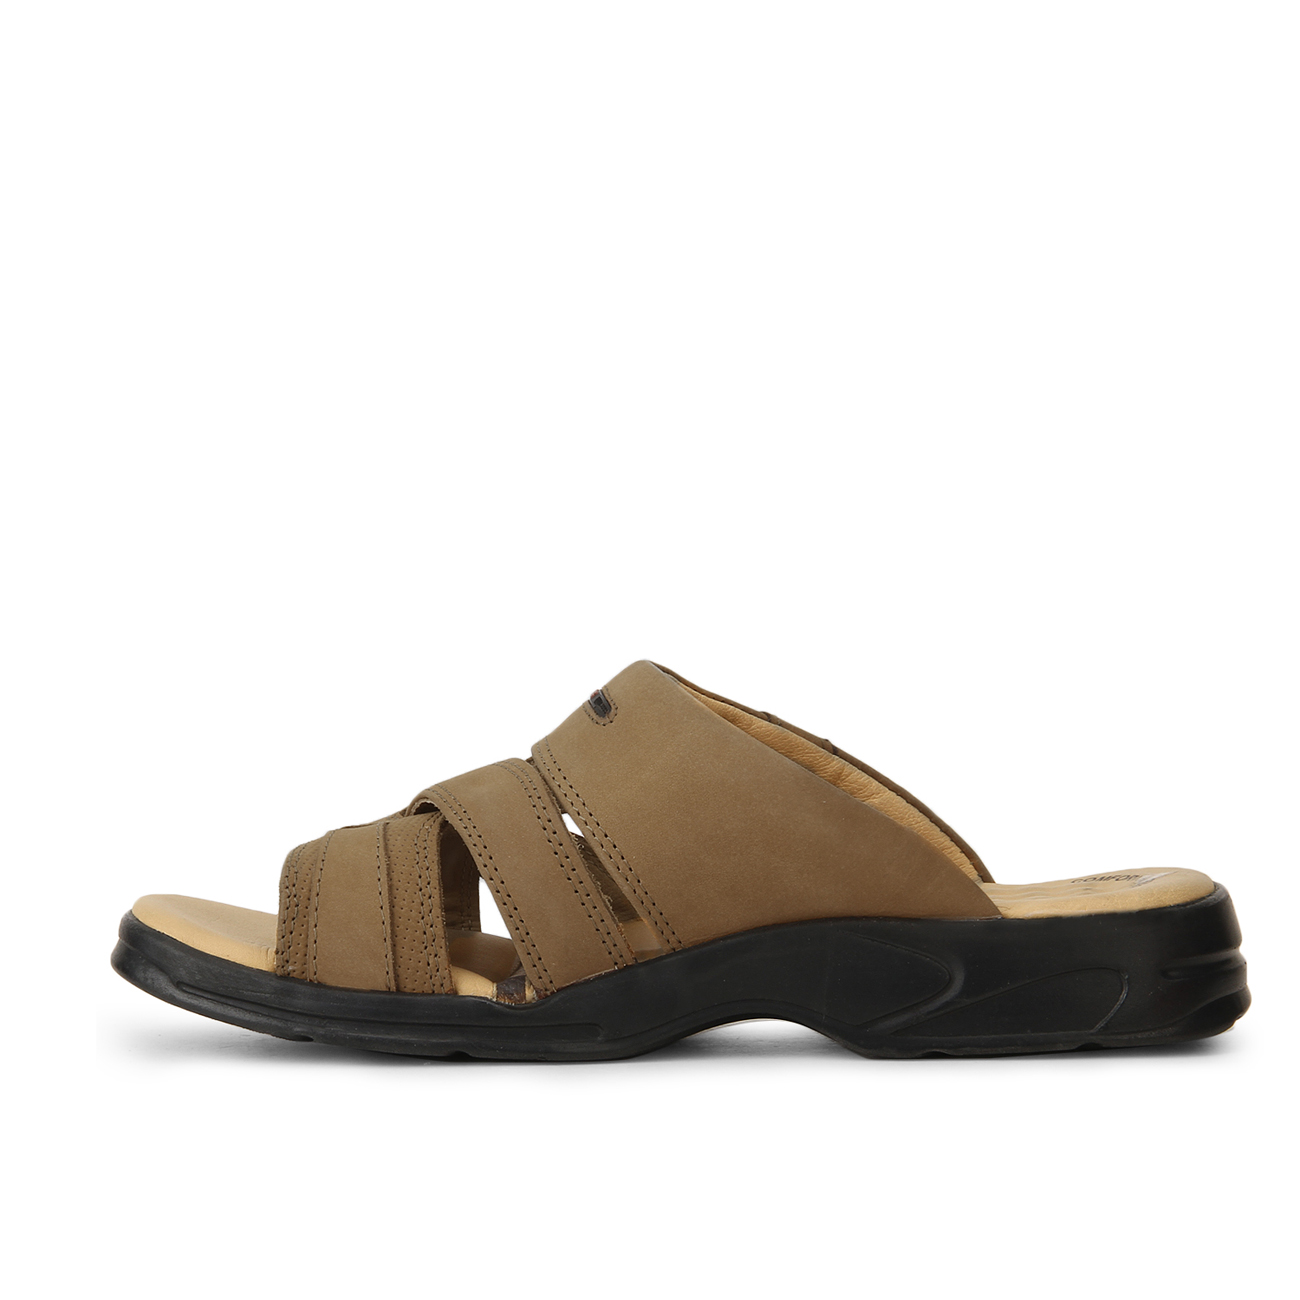 RED CHIEF | RC593 022 RUST Slippers